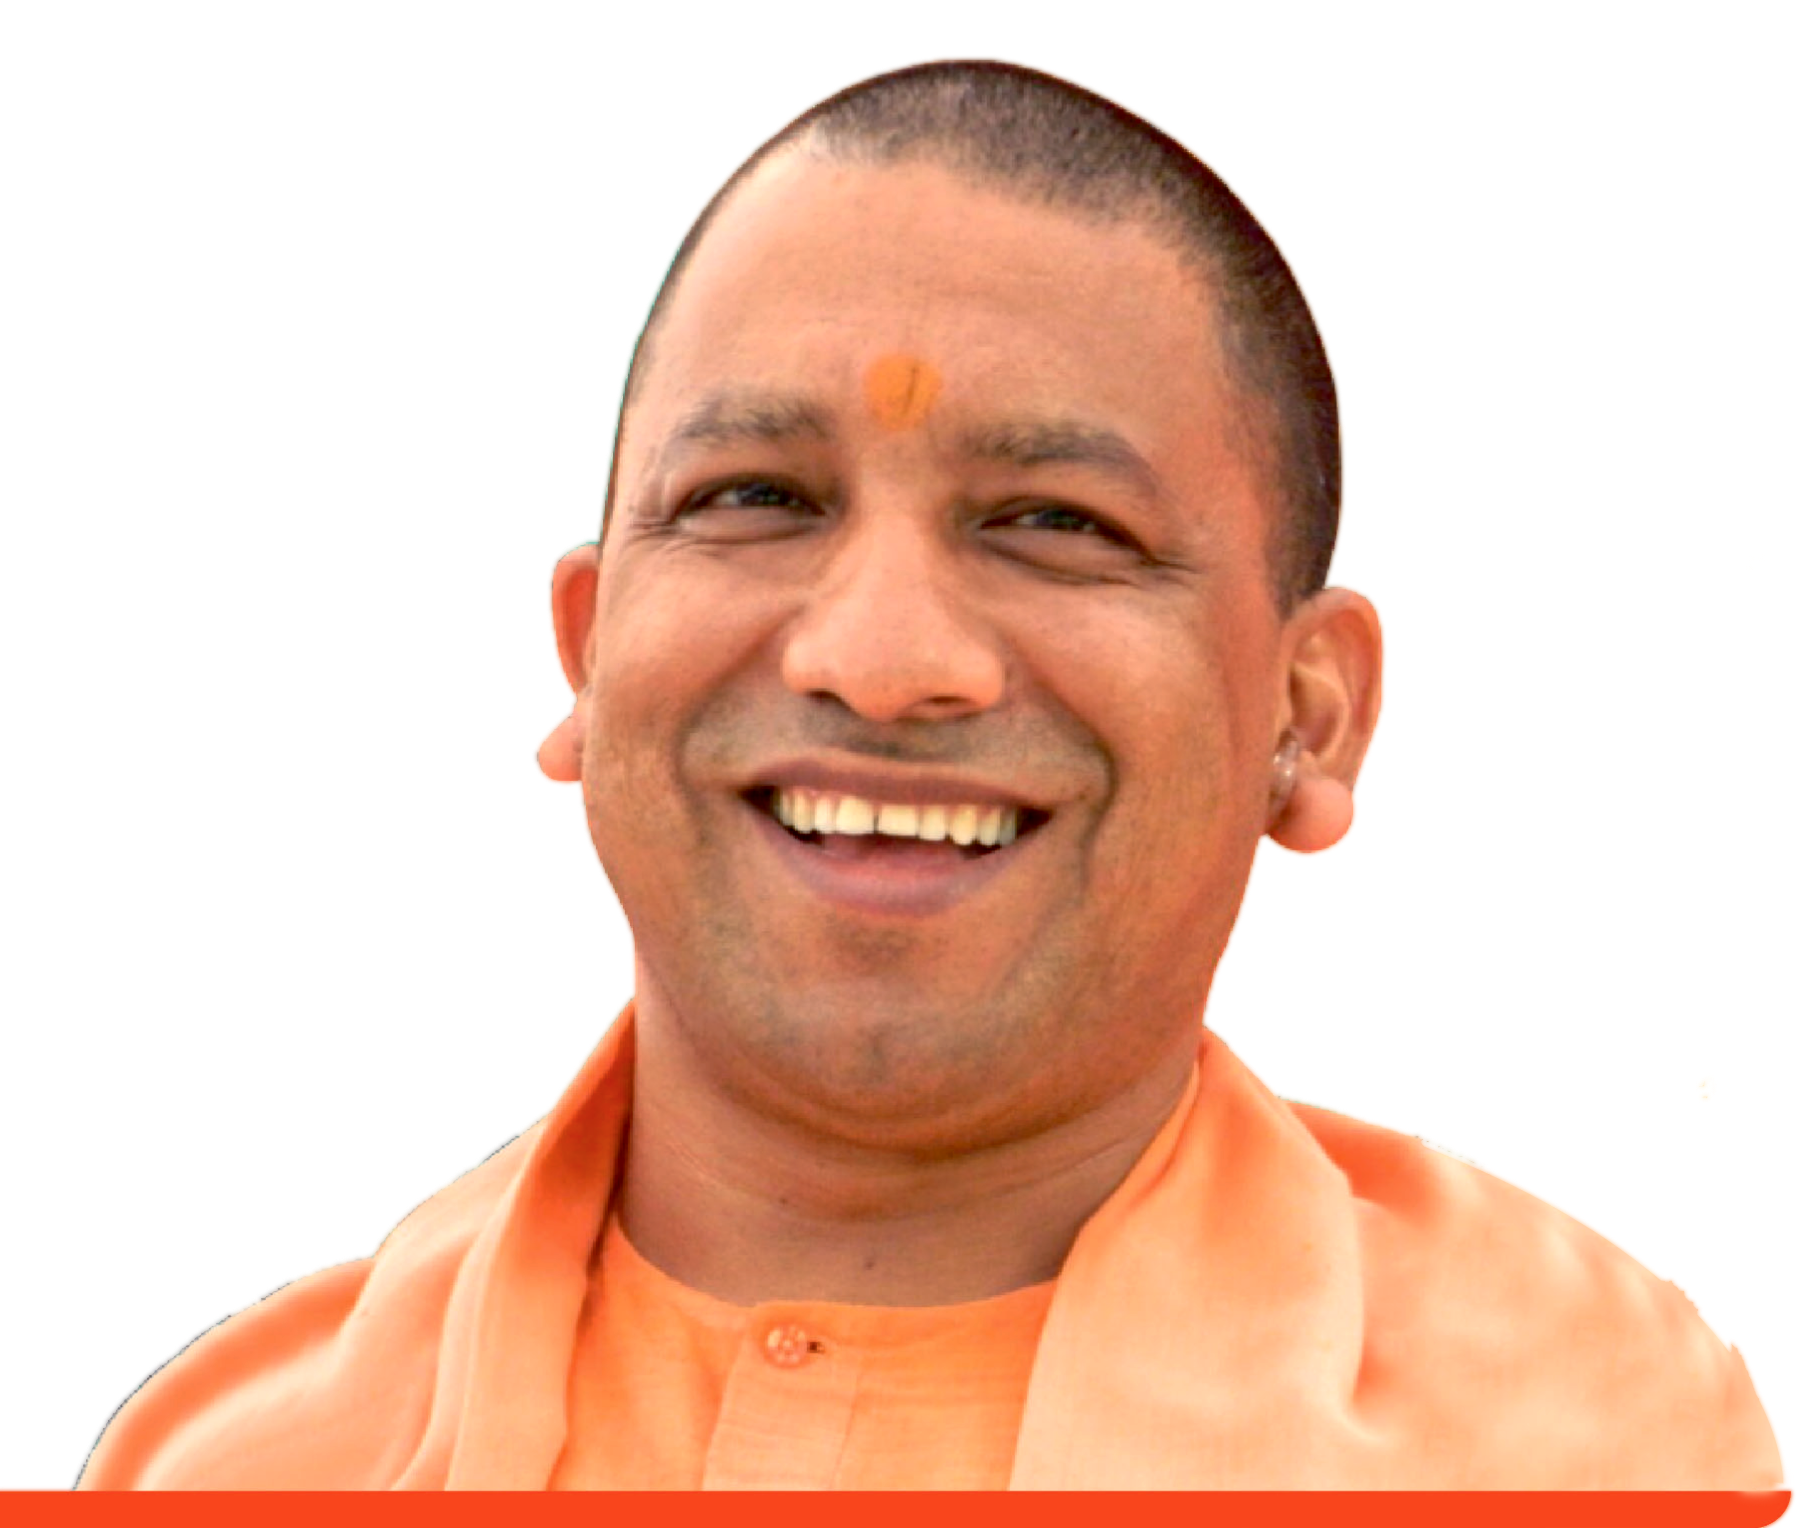 Lucknow Government Yogi Of India Uttar Chief PNG Image